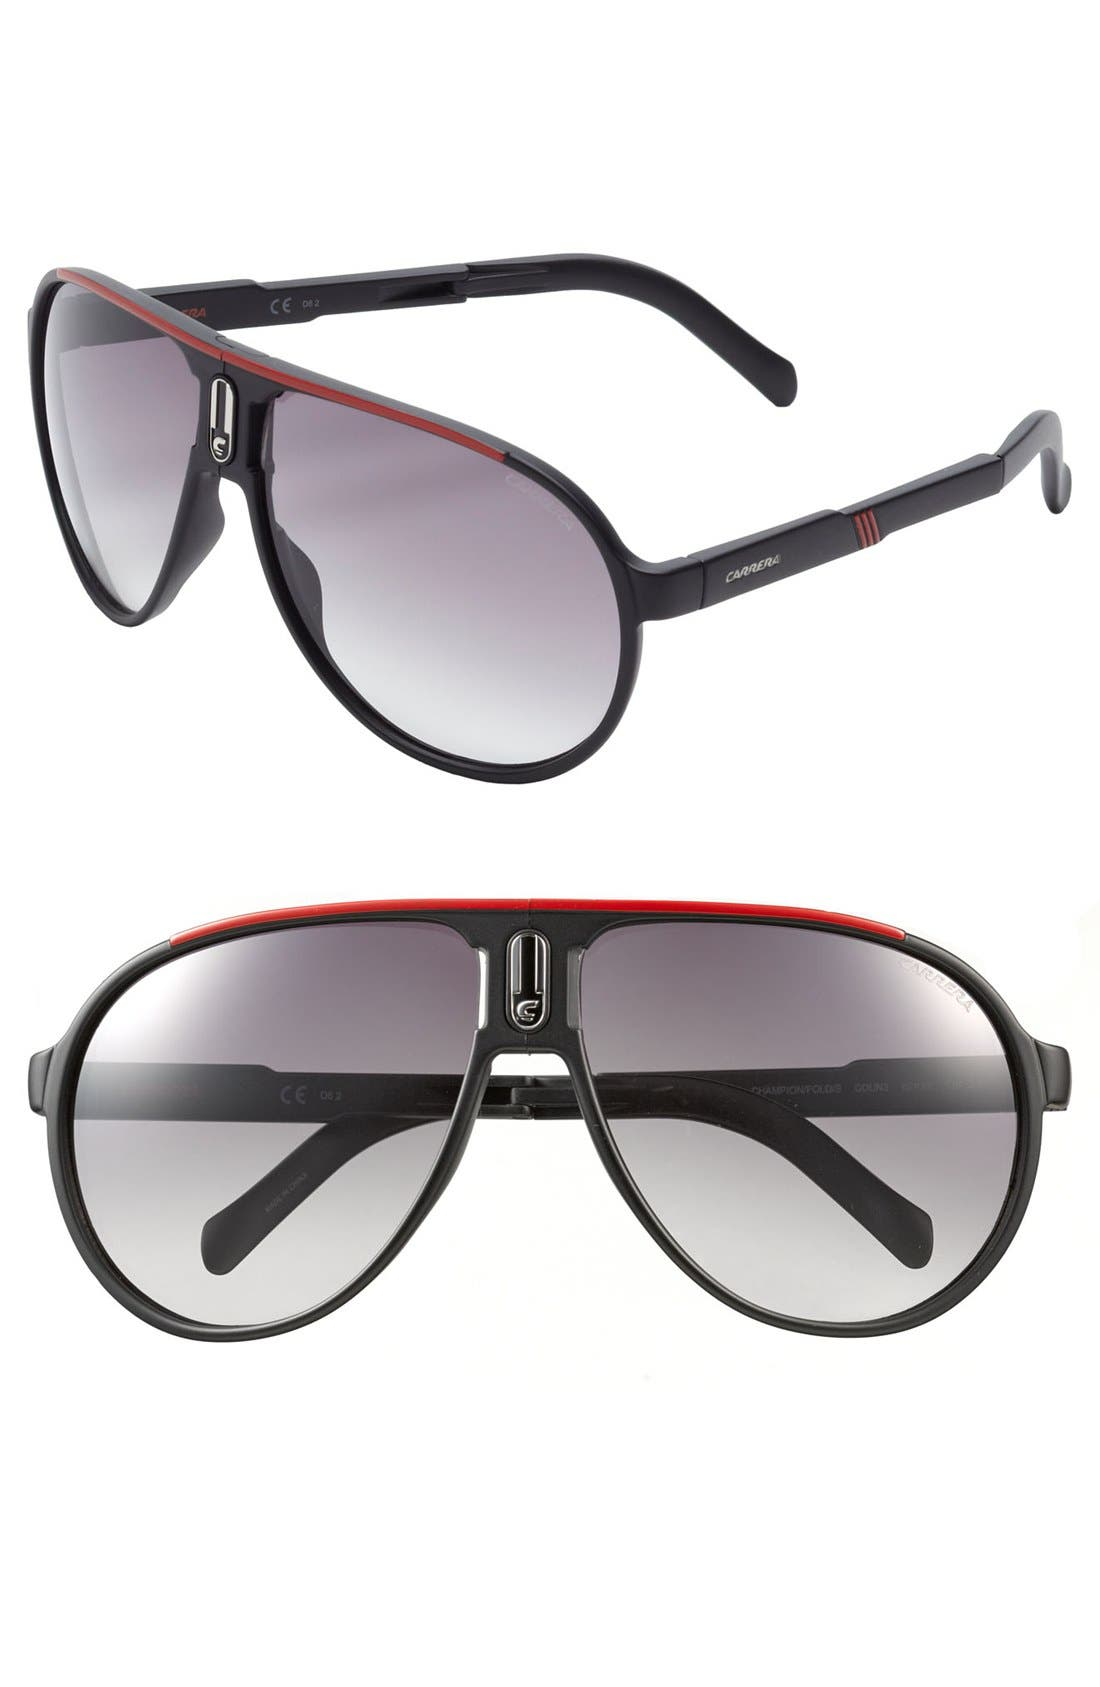 Alternate Image 1 Selected - Carrera Eyewear 'Champion' 62mm Polarized Folding Sunglasses